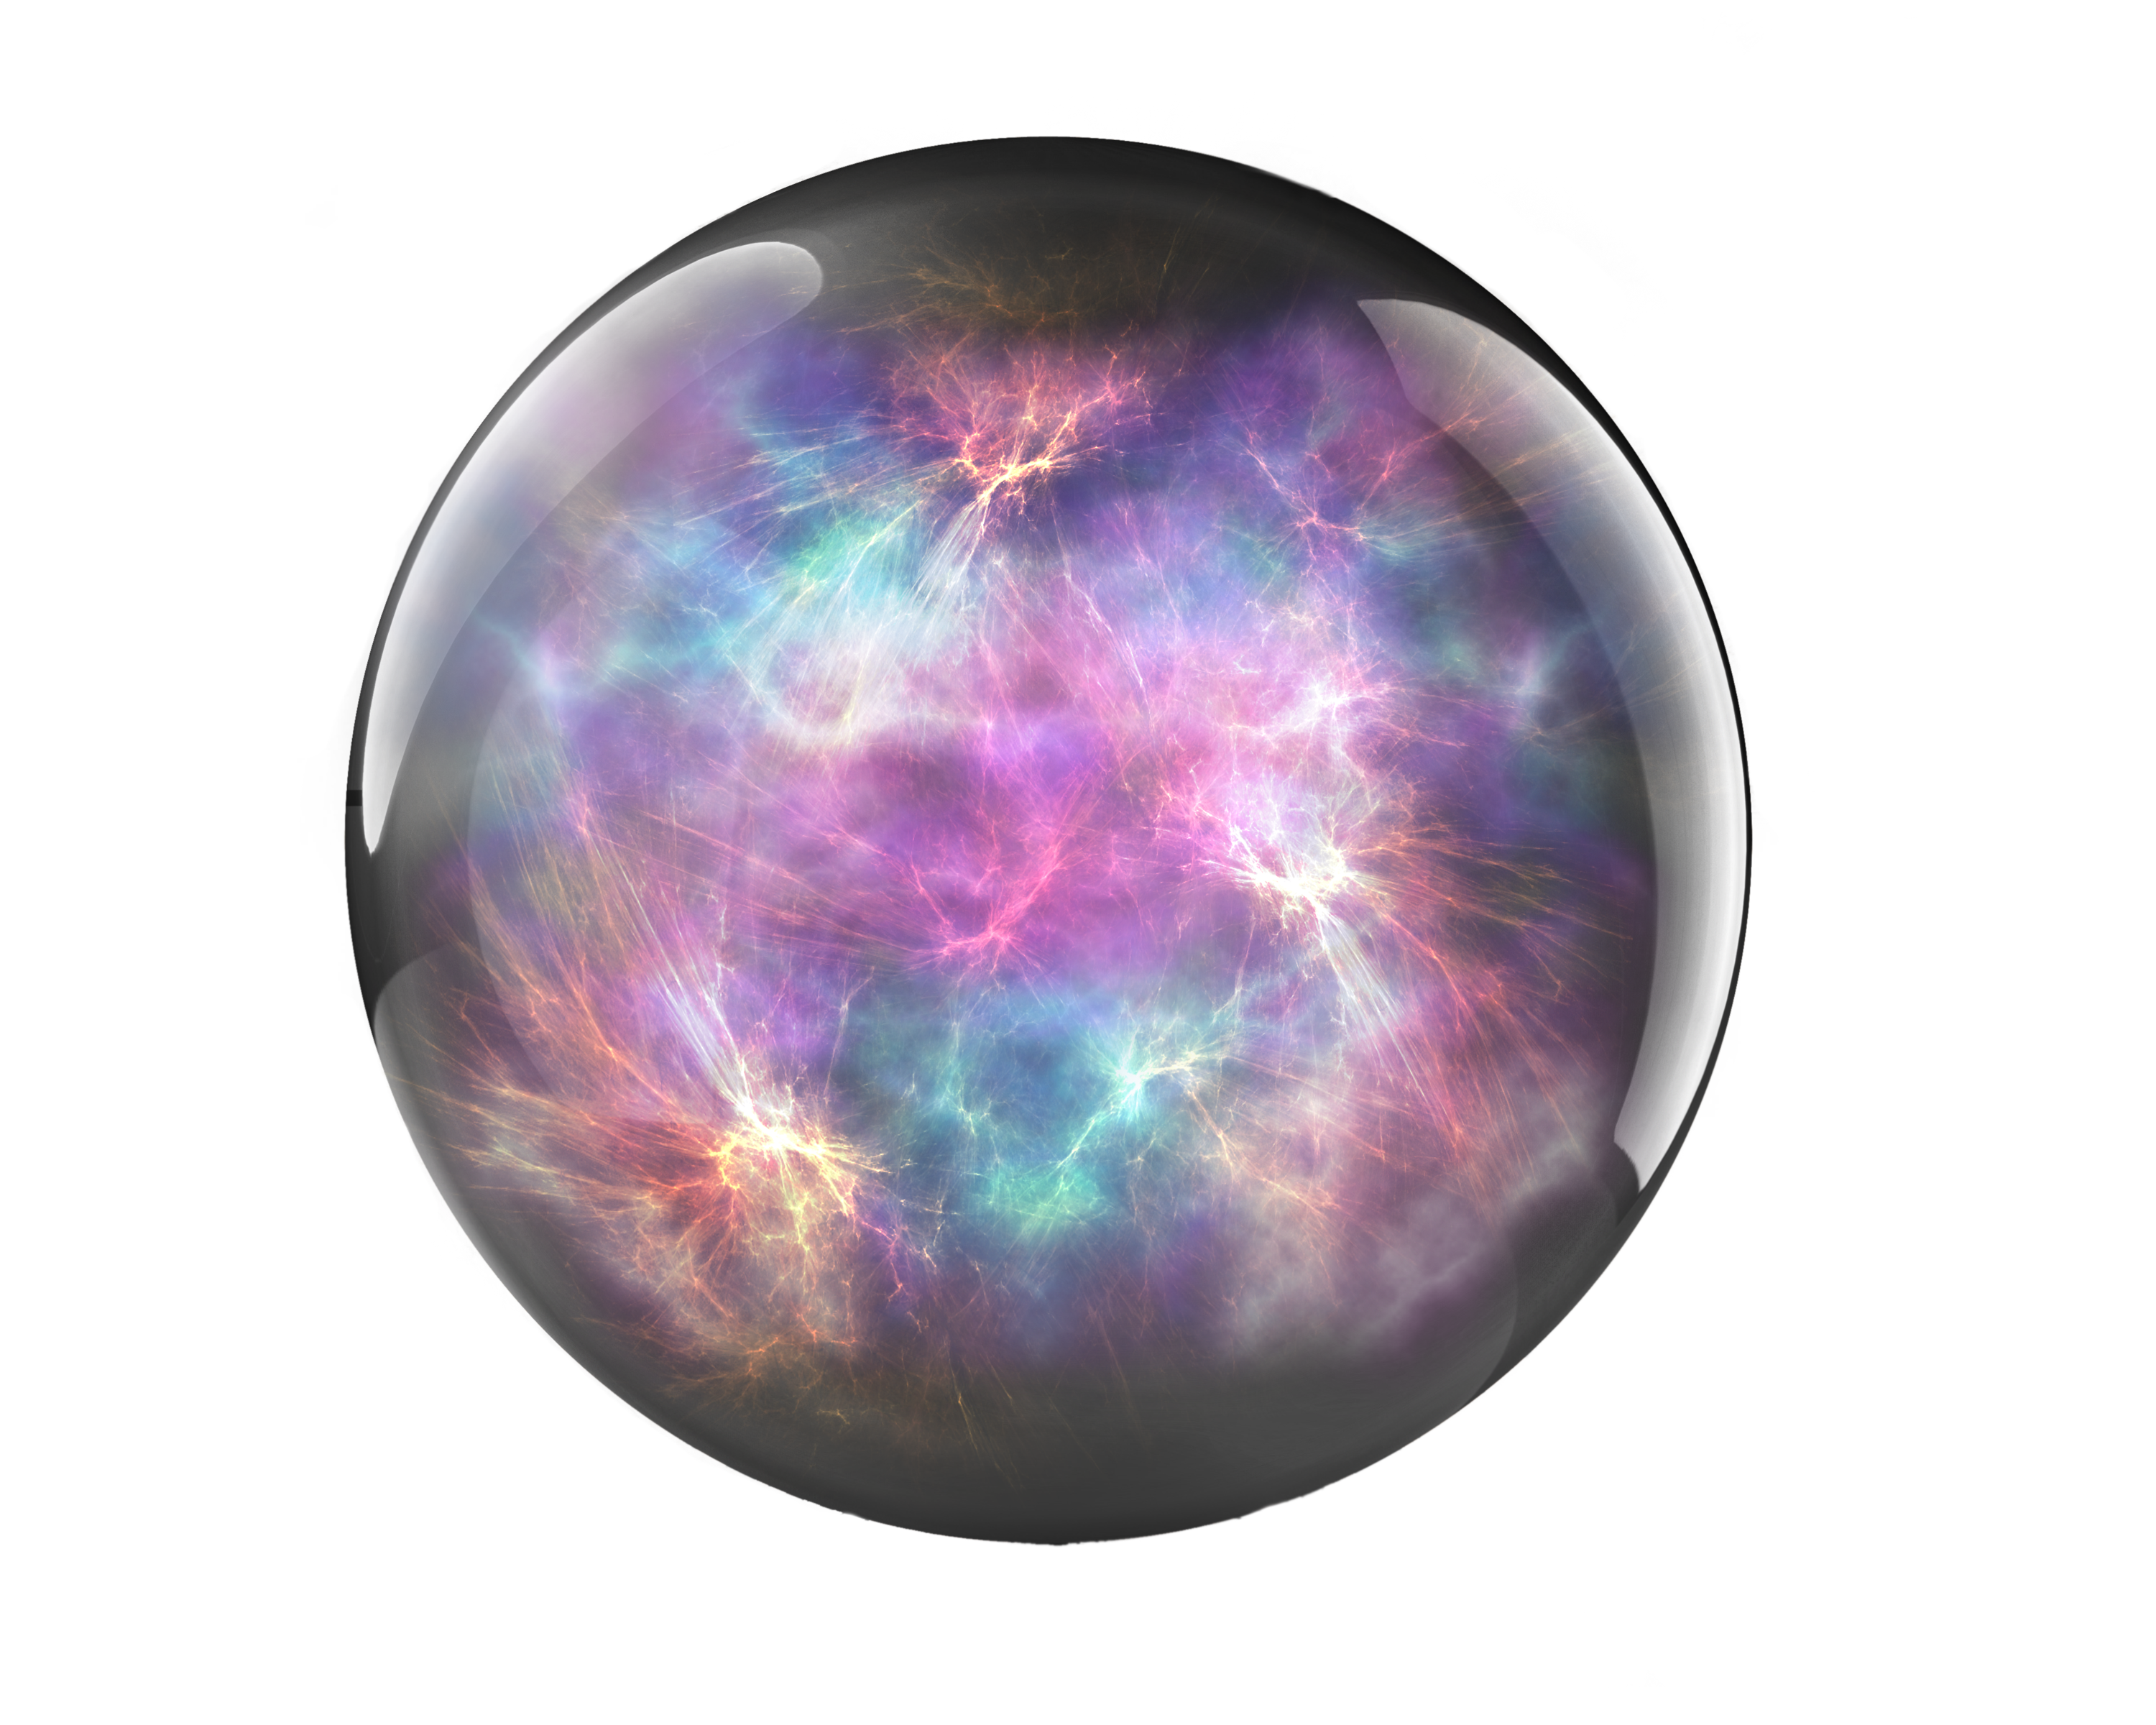 Png magic by moonglowlilly. Future clipart crystal ball